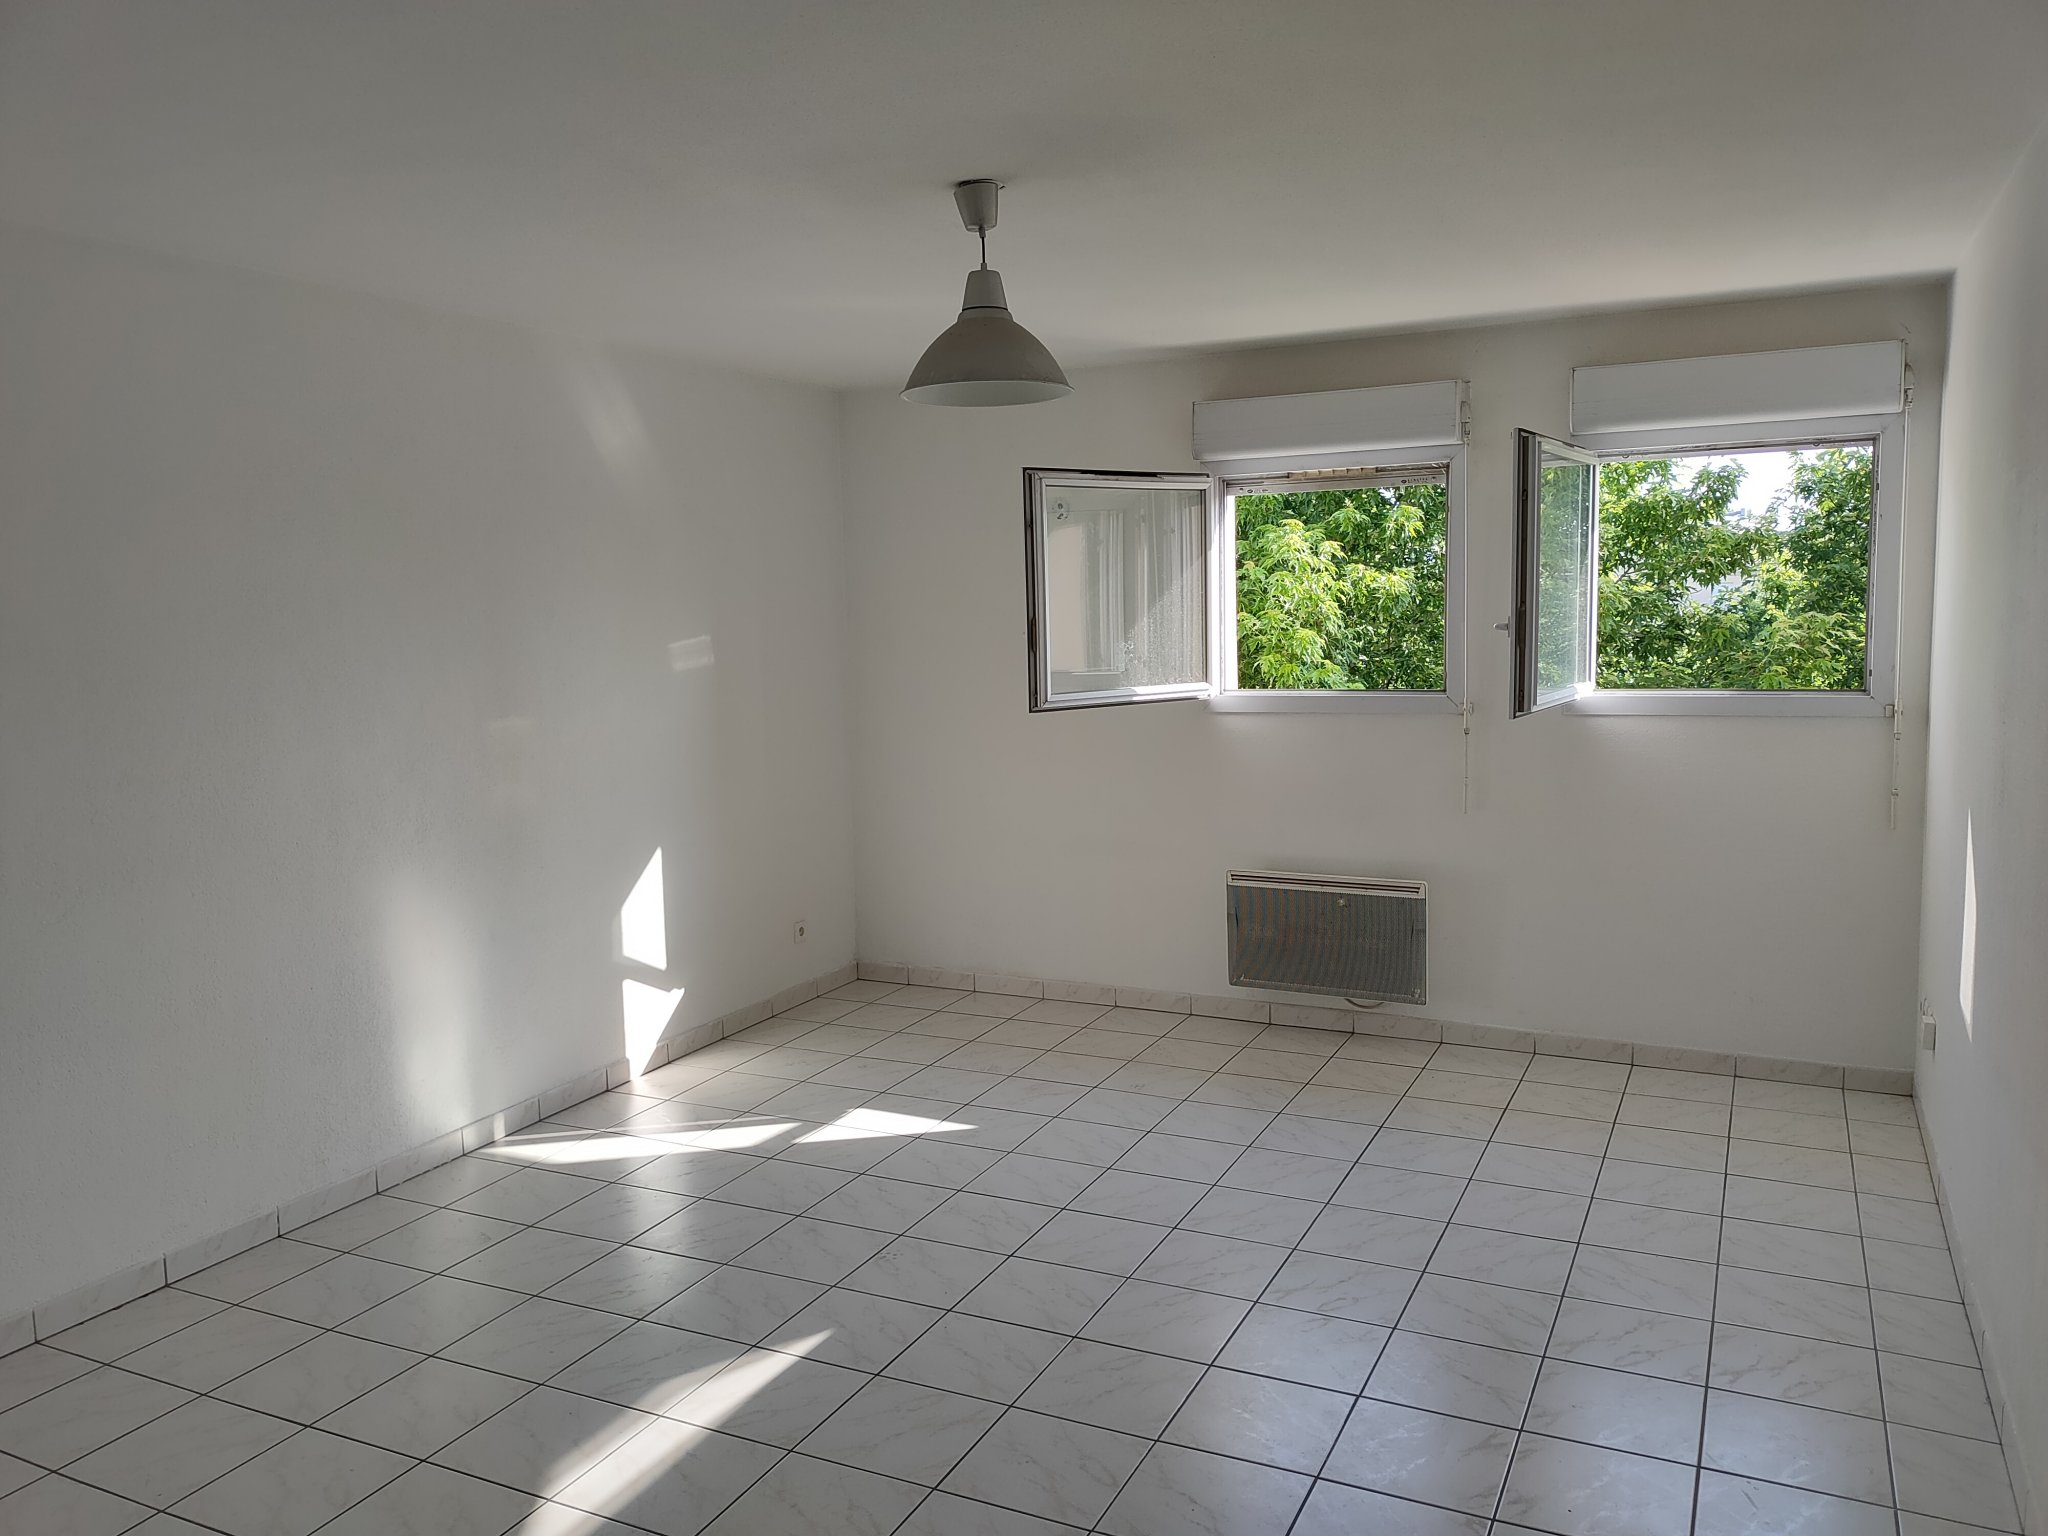 Vente appartement T3  à BEGLES - 3